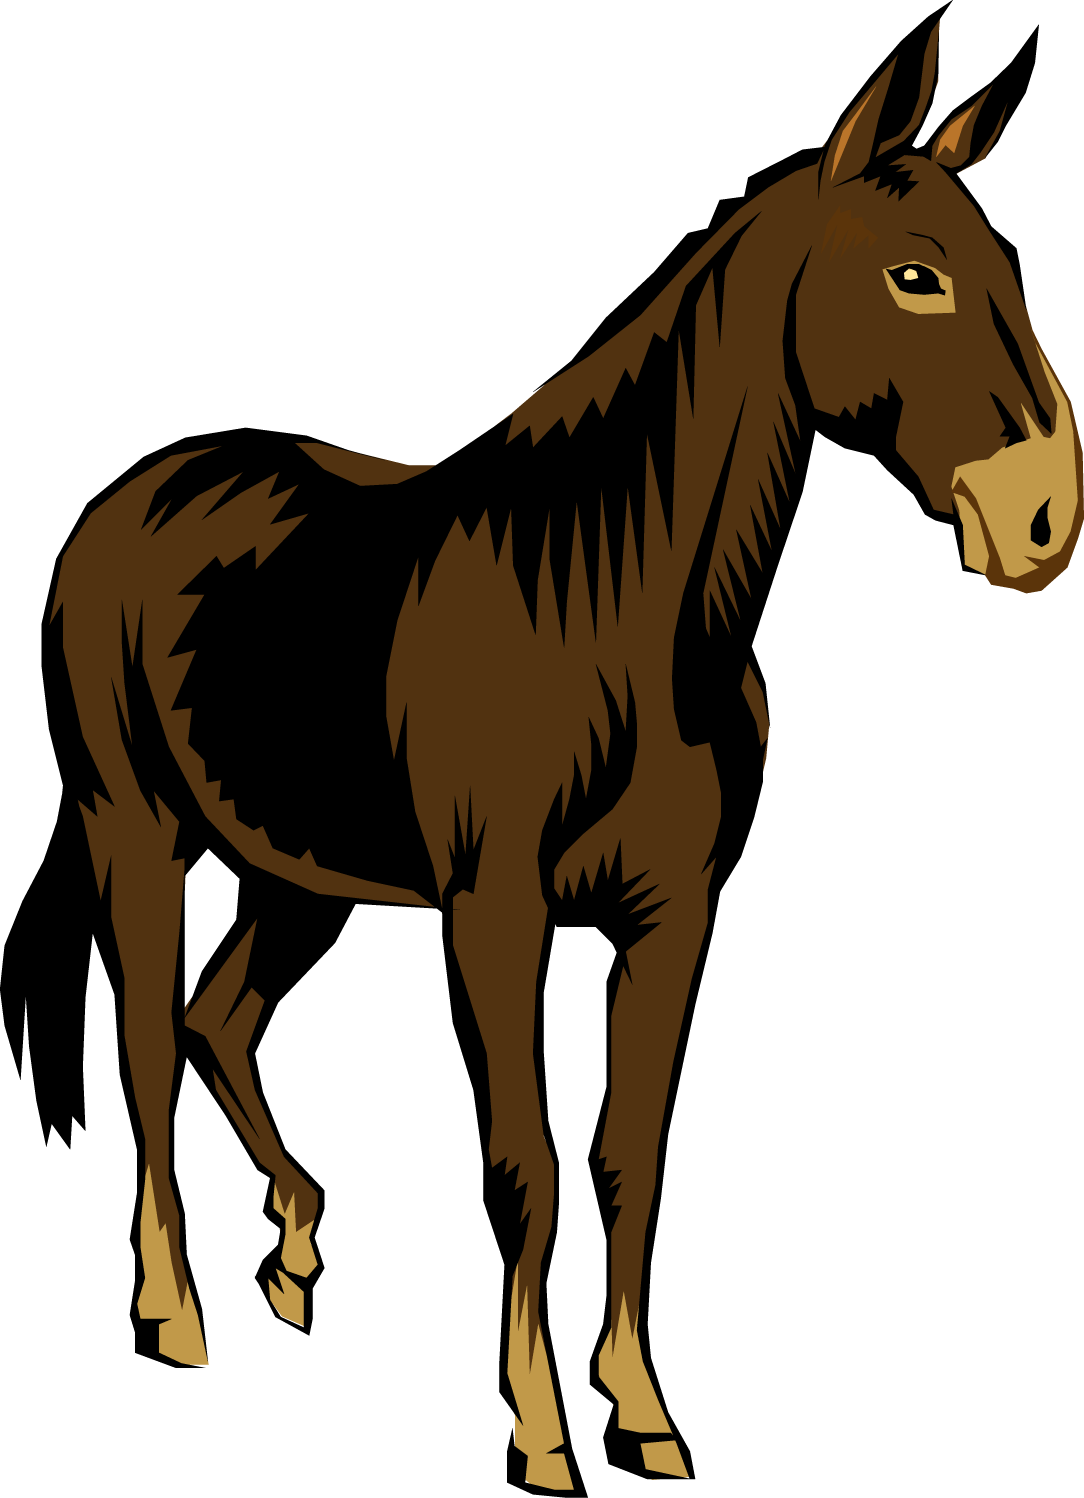 Mule clipart. Horse running at getdrawings